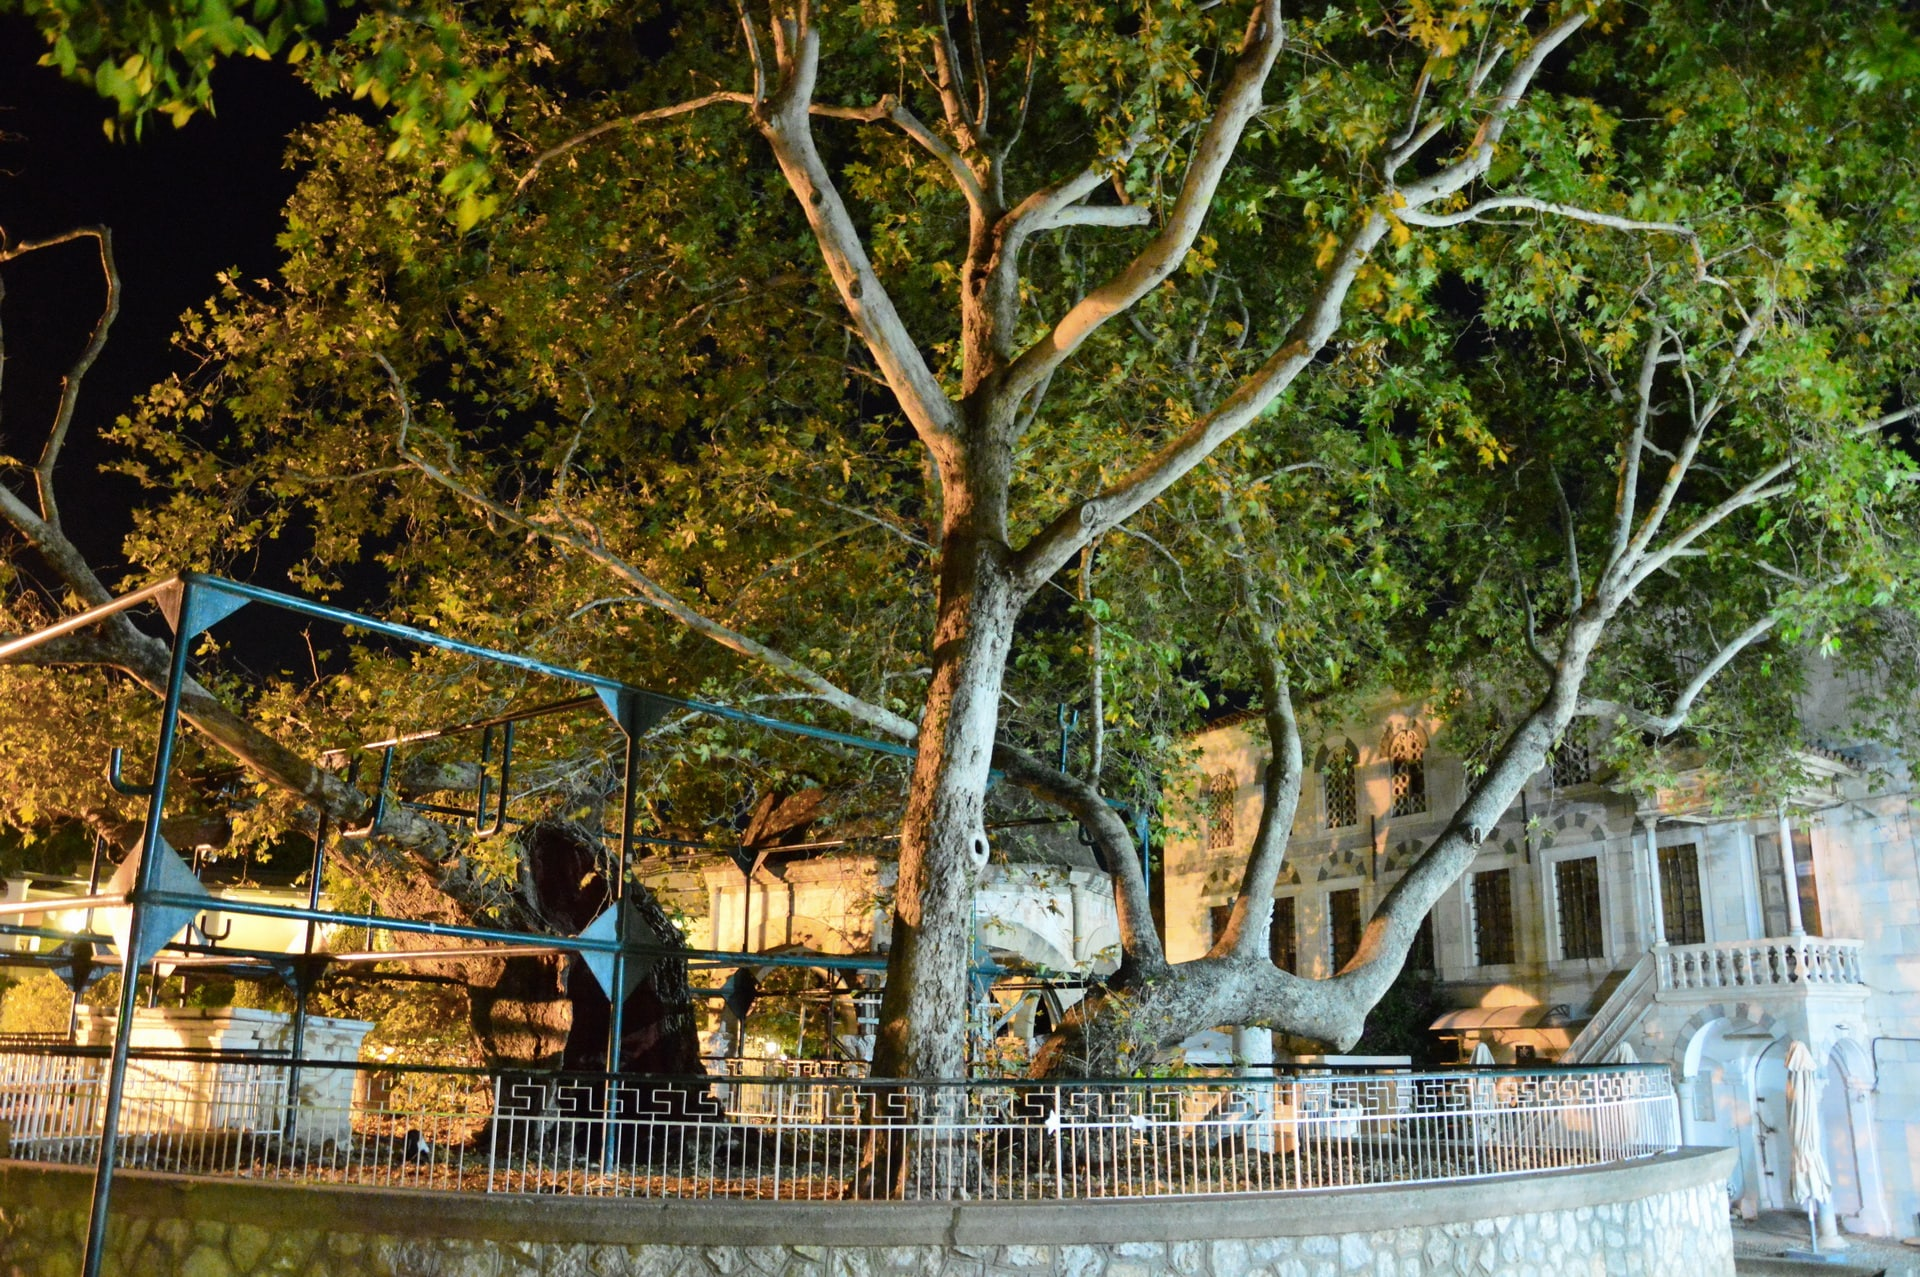 It is said that Hippocrates, the father of medicine, taught his pupils under this tree in Kos town